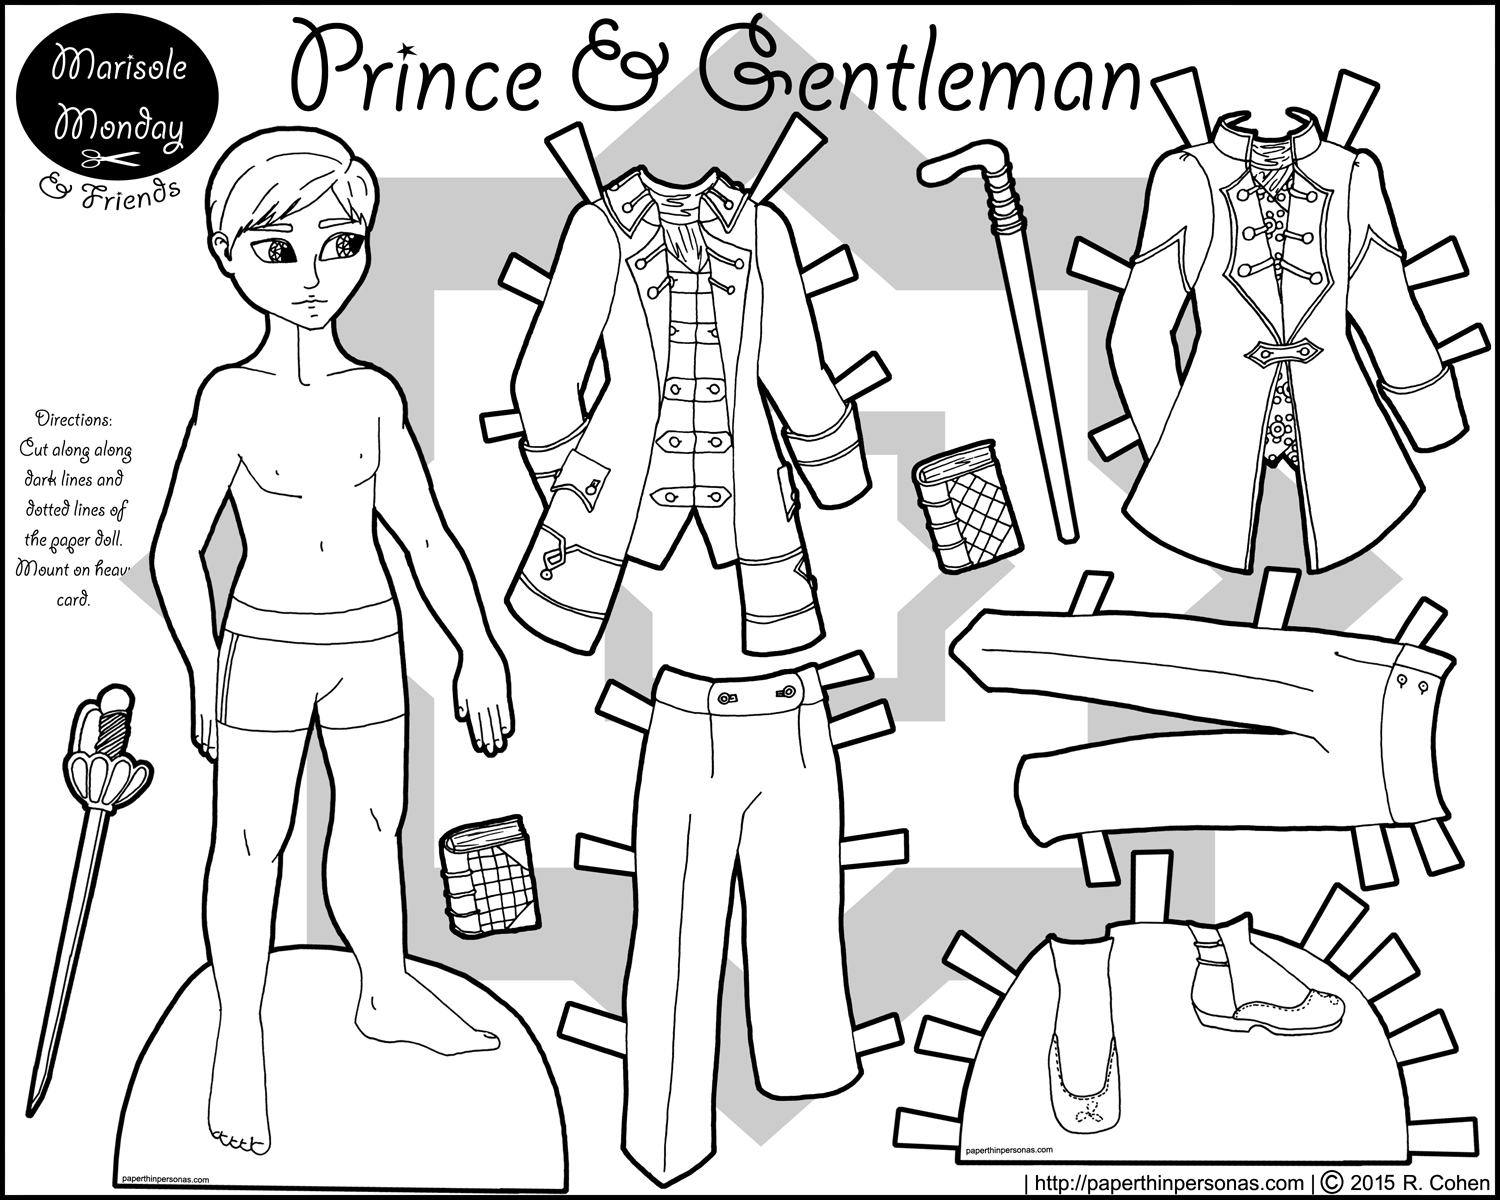 Marisole Monday U0026 Friends Archives U2022 Page 6 Of 27 U2022 Paper Thin Personas - Thin Boy Black And White, Transparent background PNG HD thumbnail